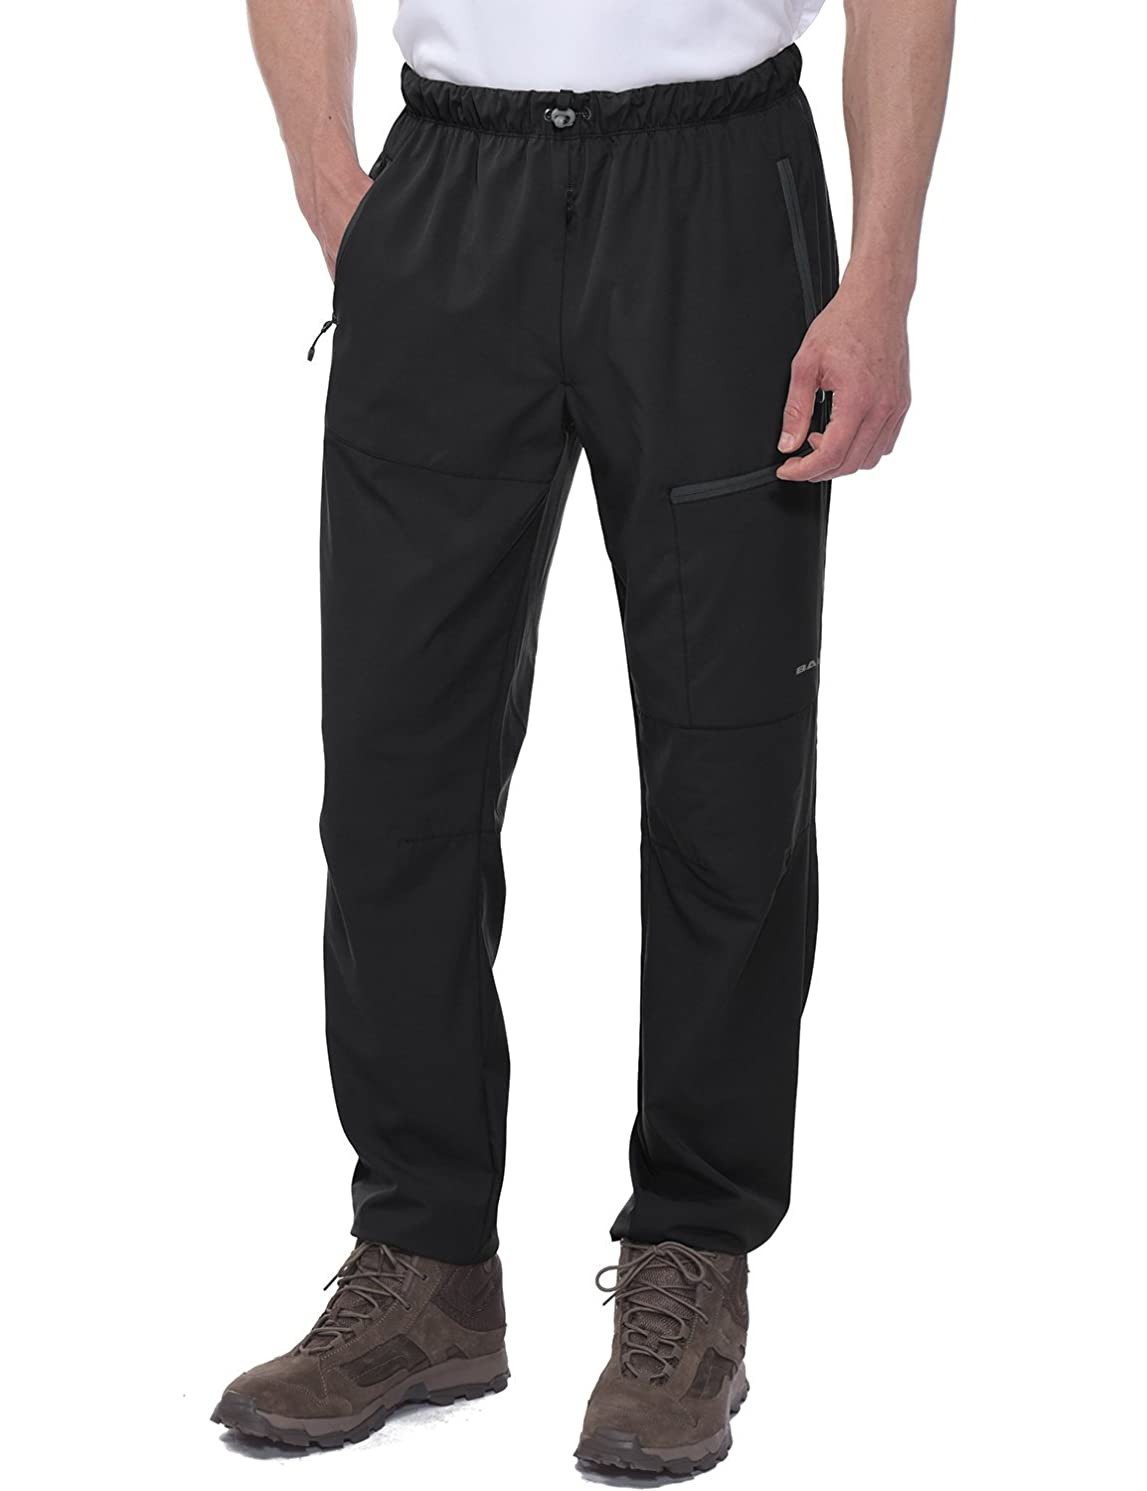 Baleaf Men's Hiking Pants UPF 50+ Stretch Cargo Pants with Zipper Pockets Water Resistant